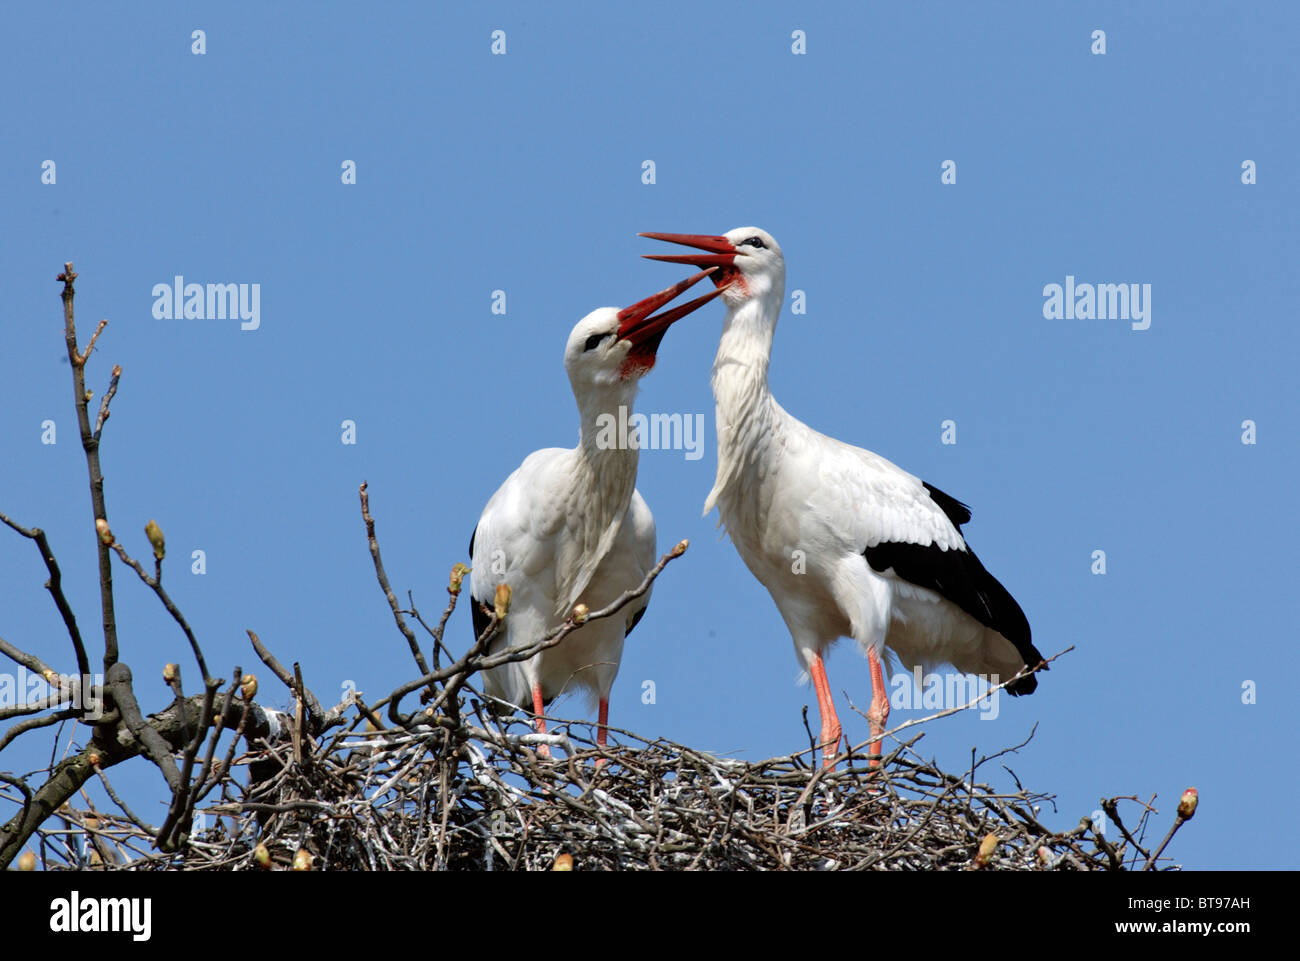 White Stork (Ciconia ciconia), adult, couple on nest, Europe Stock